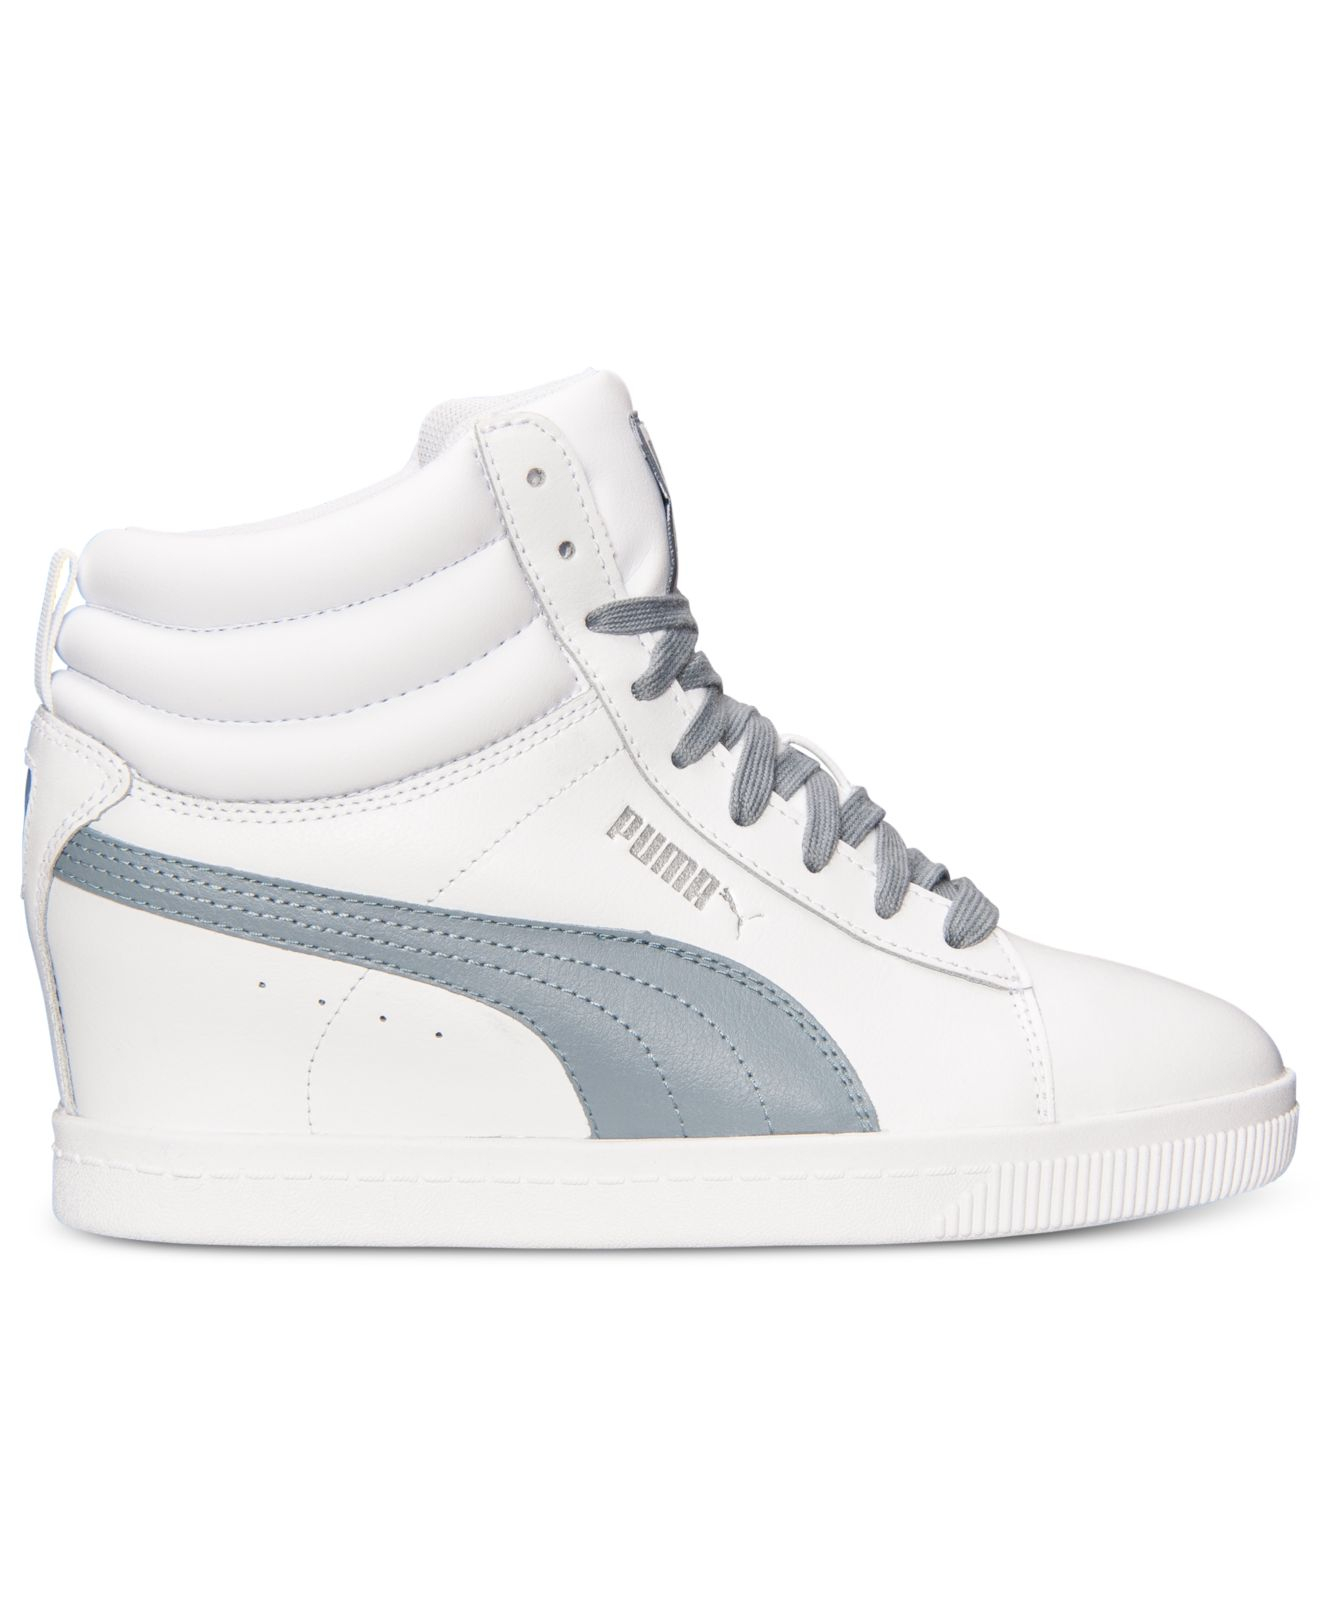 7e2797e53b3c Gallery. Previously sold at  Macy s · Women s Wedge Sneakers Women s Puma  Classic ...